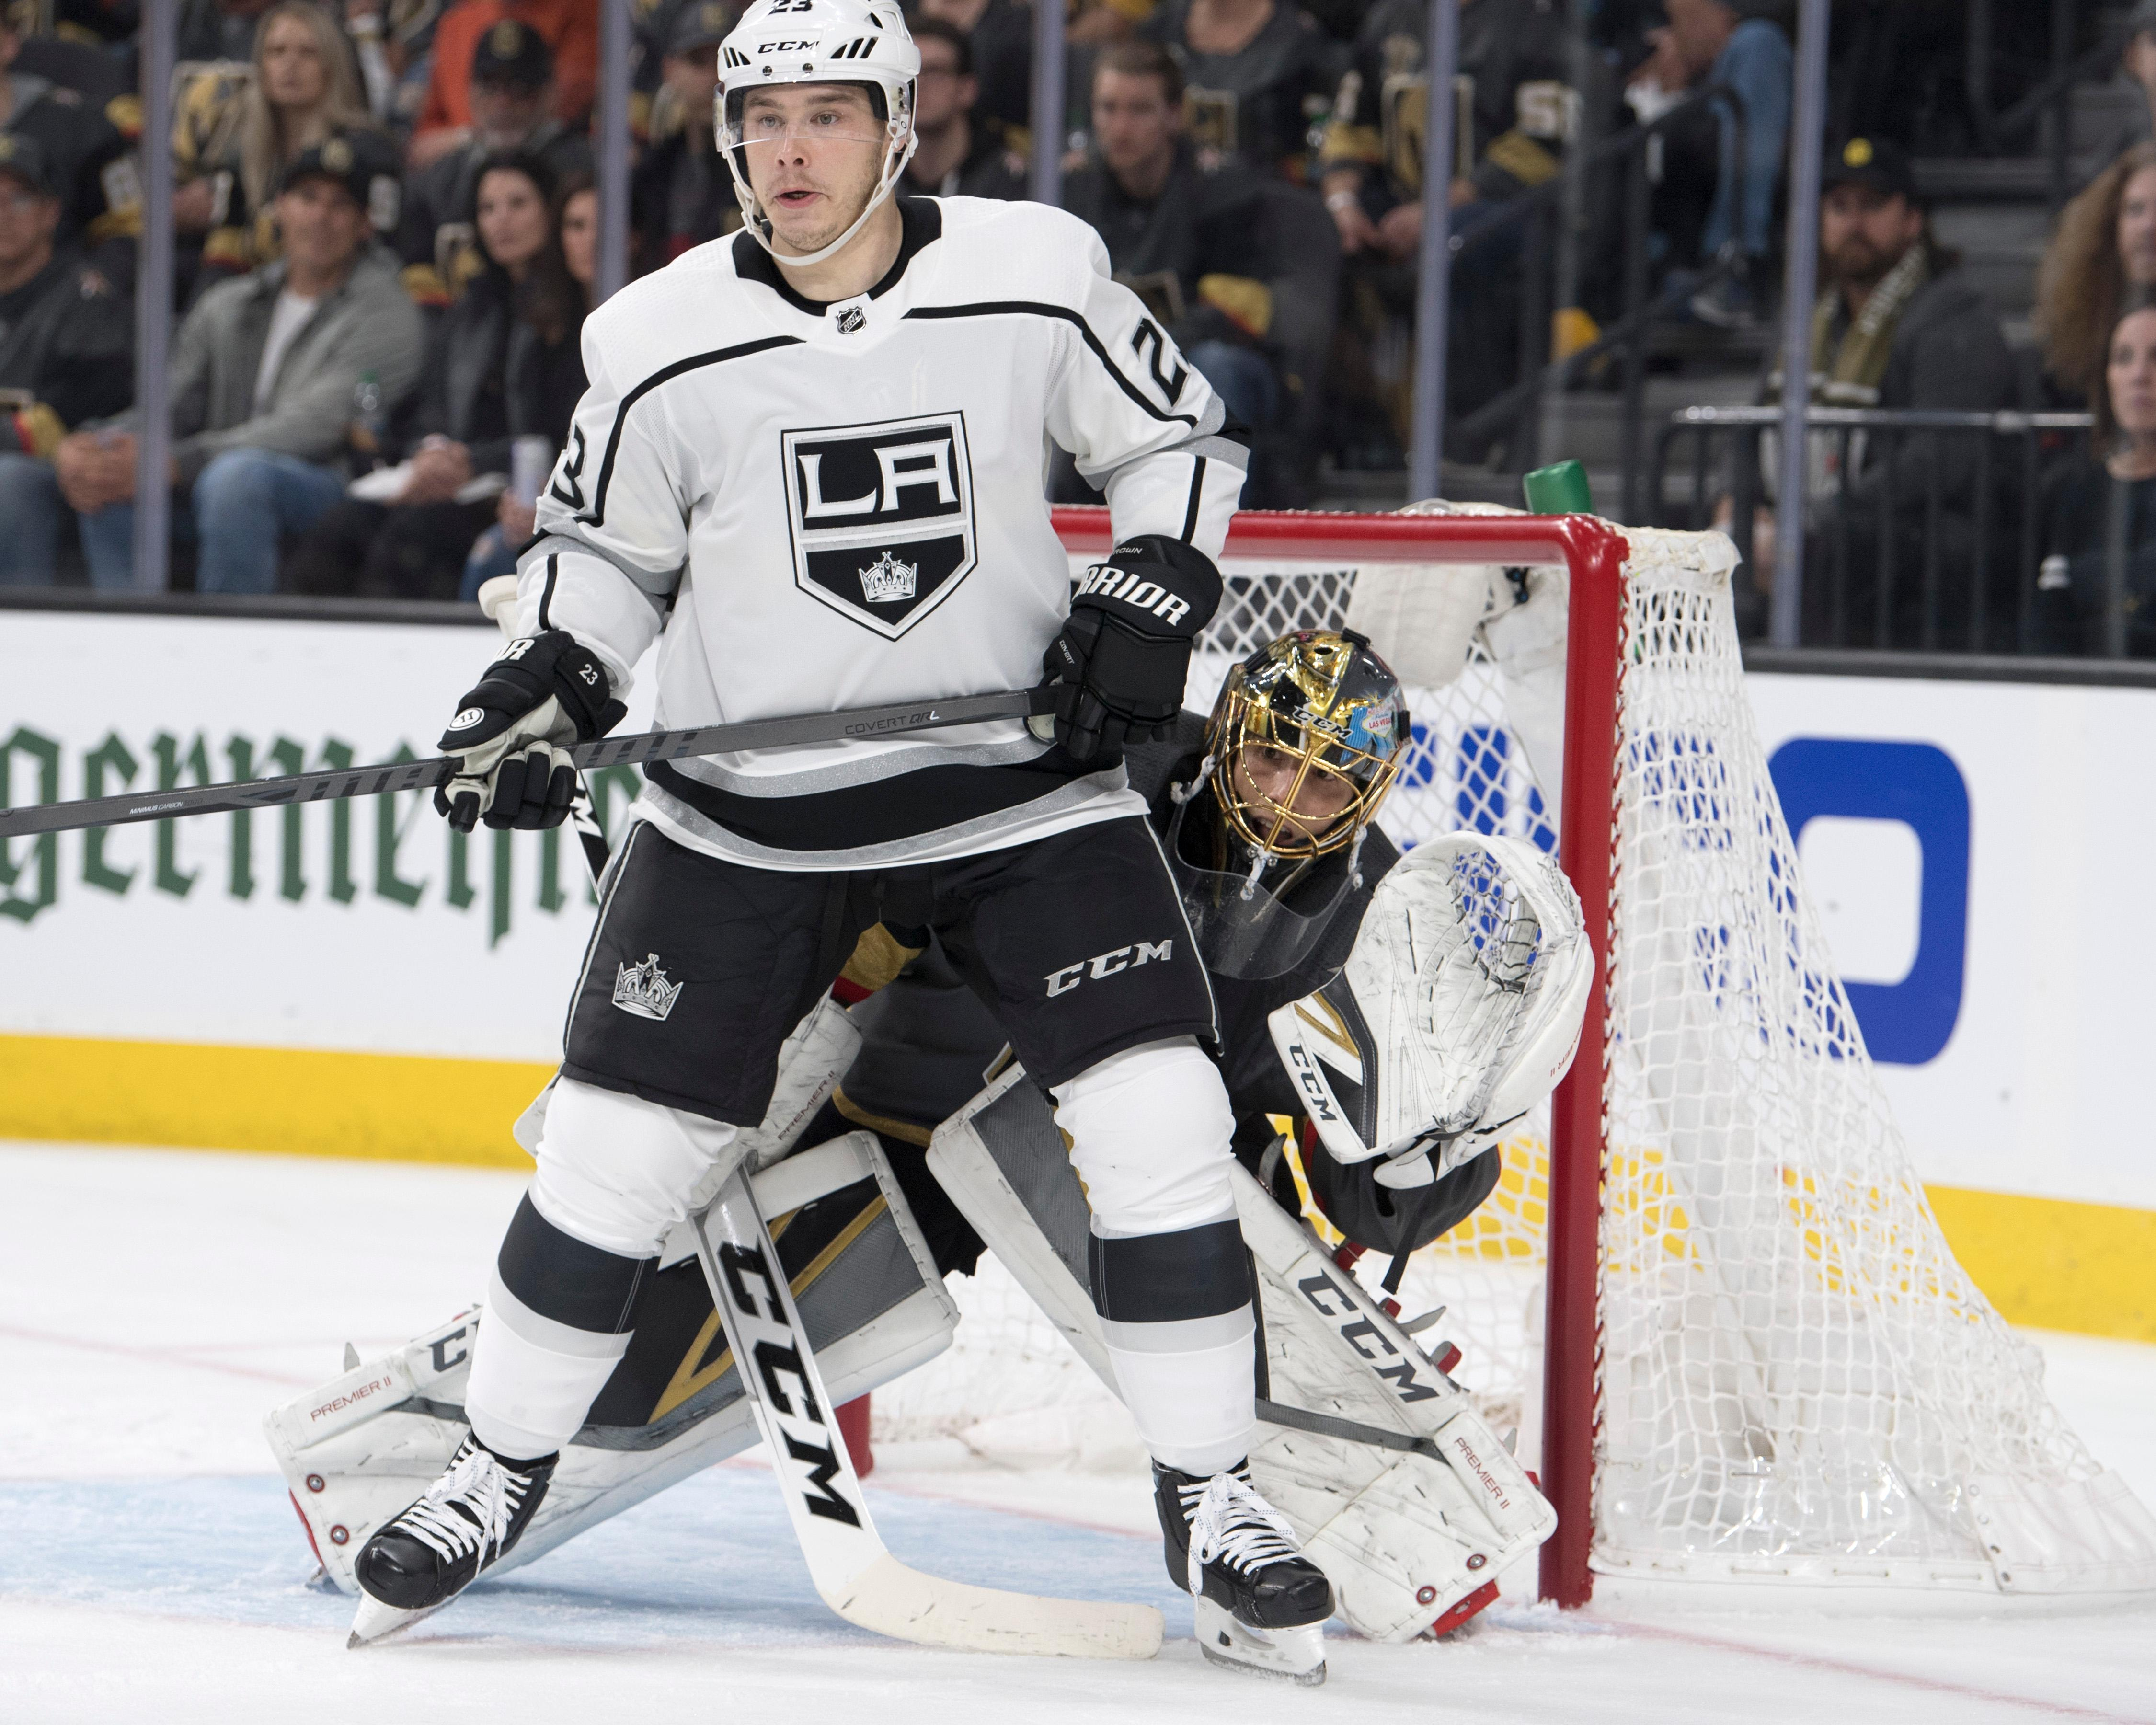 Vegas Golden Knights goaltender Marc-Andre Fleury (29) tries to look around Los Angeles Kings right wing Dustin Brown (23) during the first period of Game 1 of their NHL hockey first-round playoff series Wednesday, April 11, 2018 at T-Mobile Arena. The Knights won 1-0. CREDIT: Sam Morris/Las Vegas News Bureau